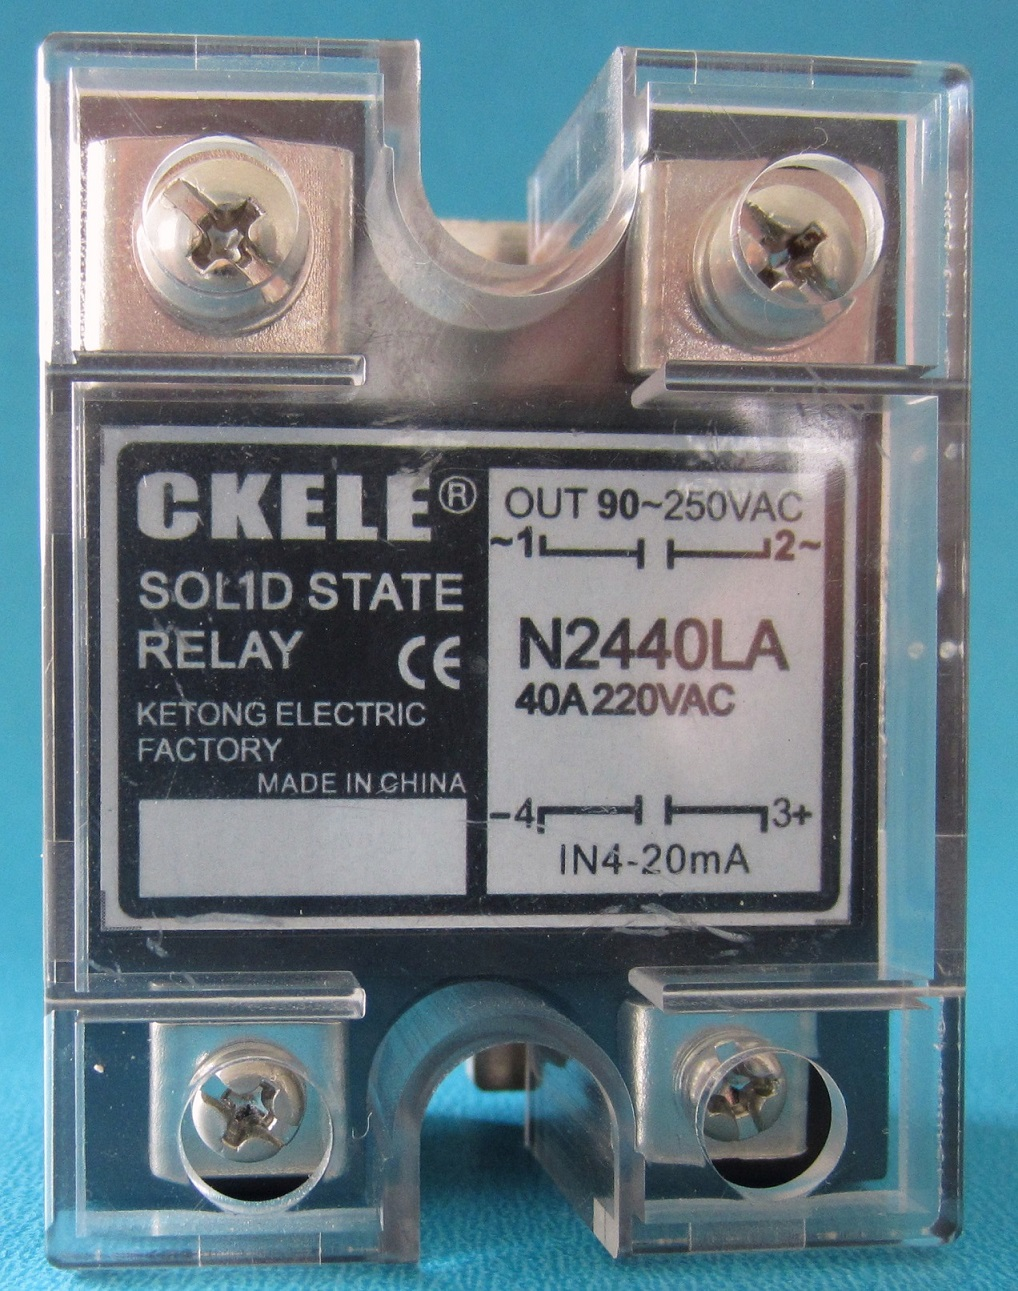 Single phase solid state power regulator N type current 4-20mA input N2480LA80A load 90-250VAC